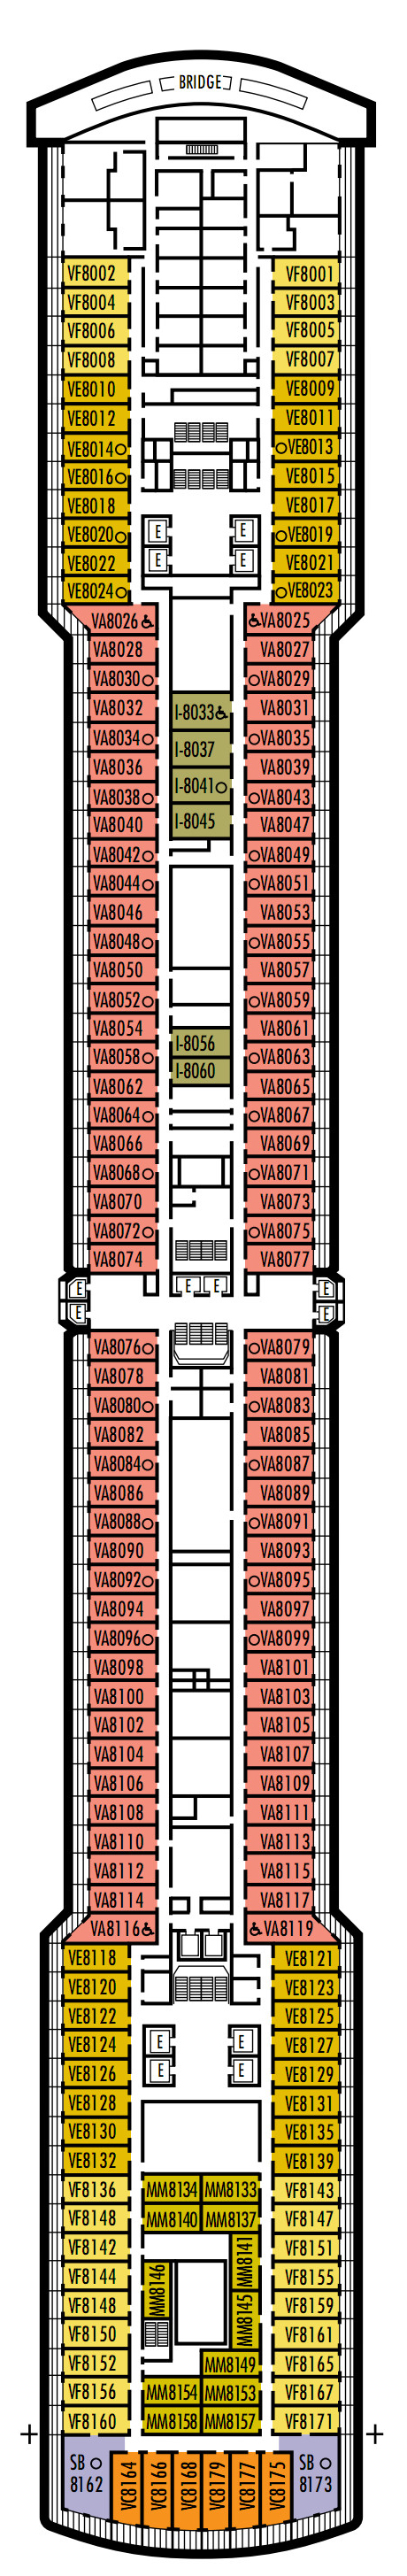 Eurodam Deck 8 - Navigation Deck layout